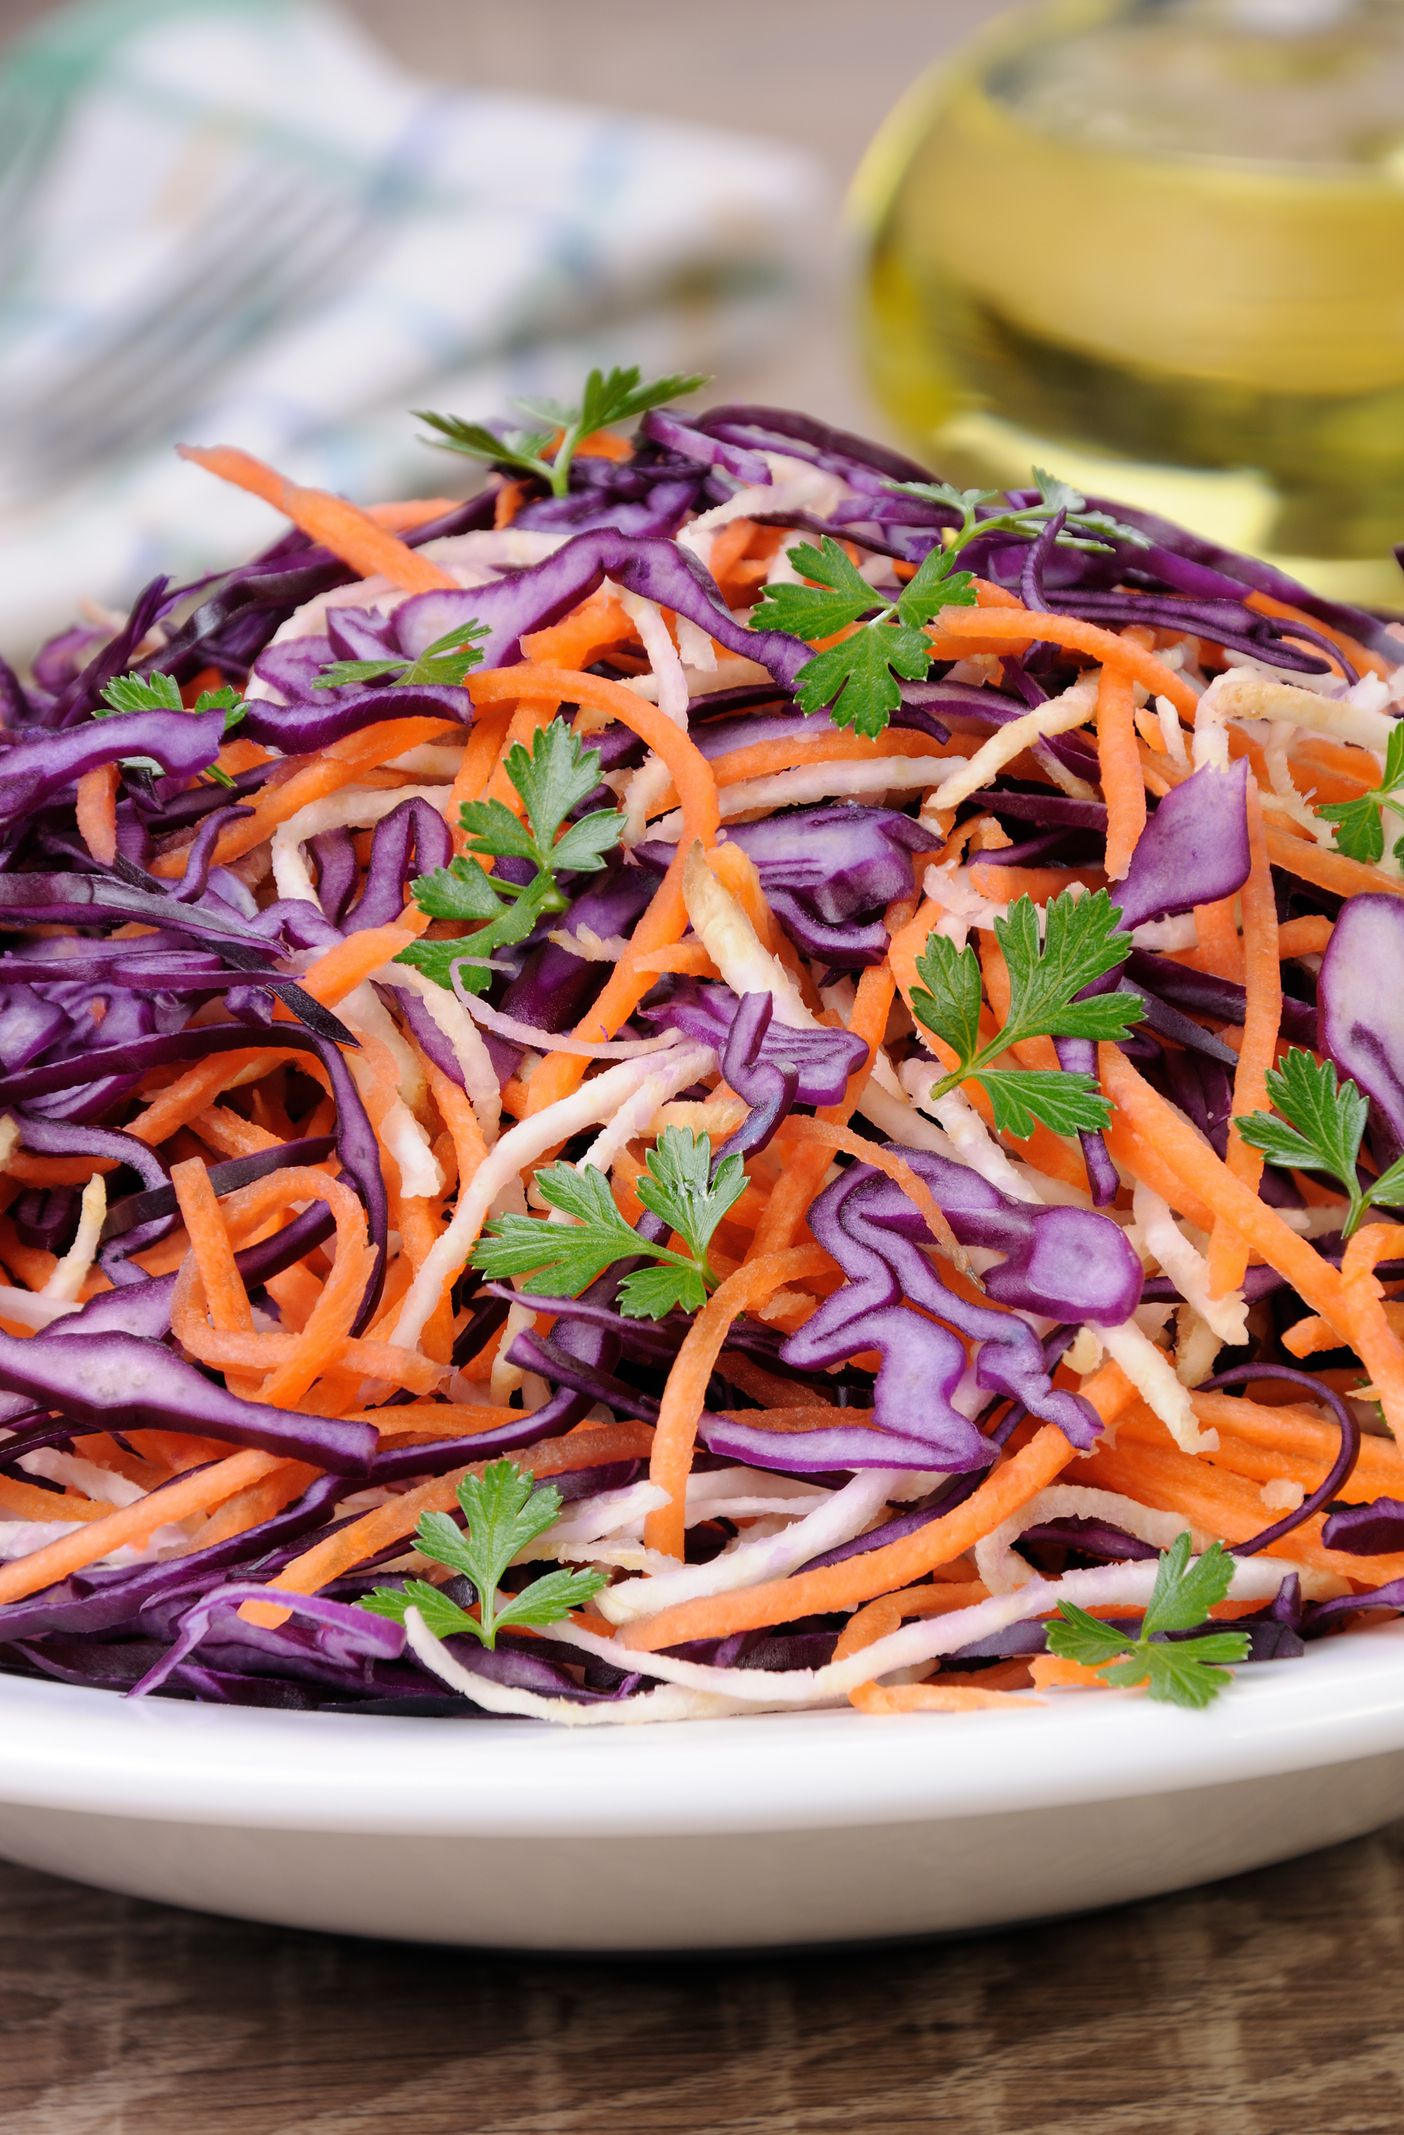 This colourful slaw delivers plenty of cruciferous phytochemicals thought to guard against cancer, heart disease and stroke. Nutrition: 76 calories, 1 g protein, 2 g fibre per serving.